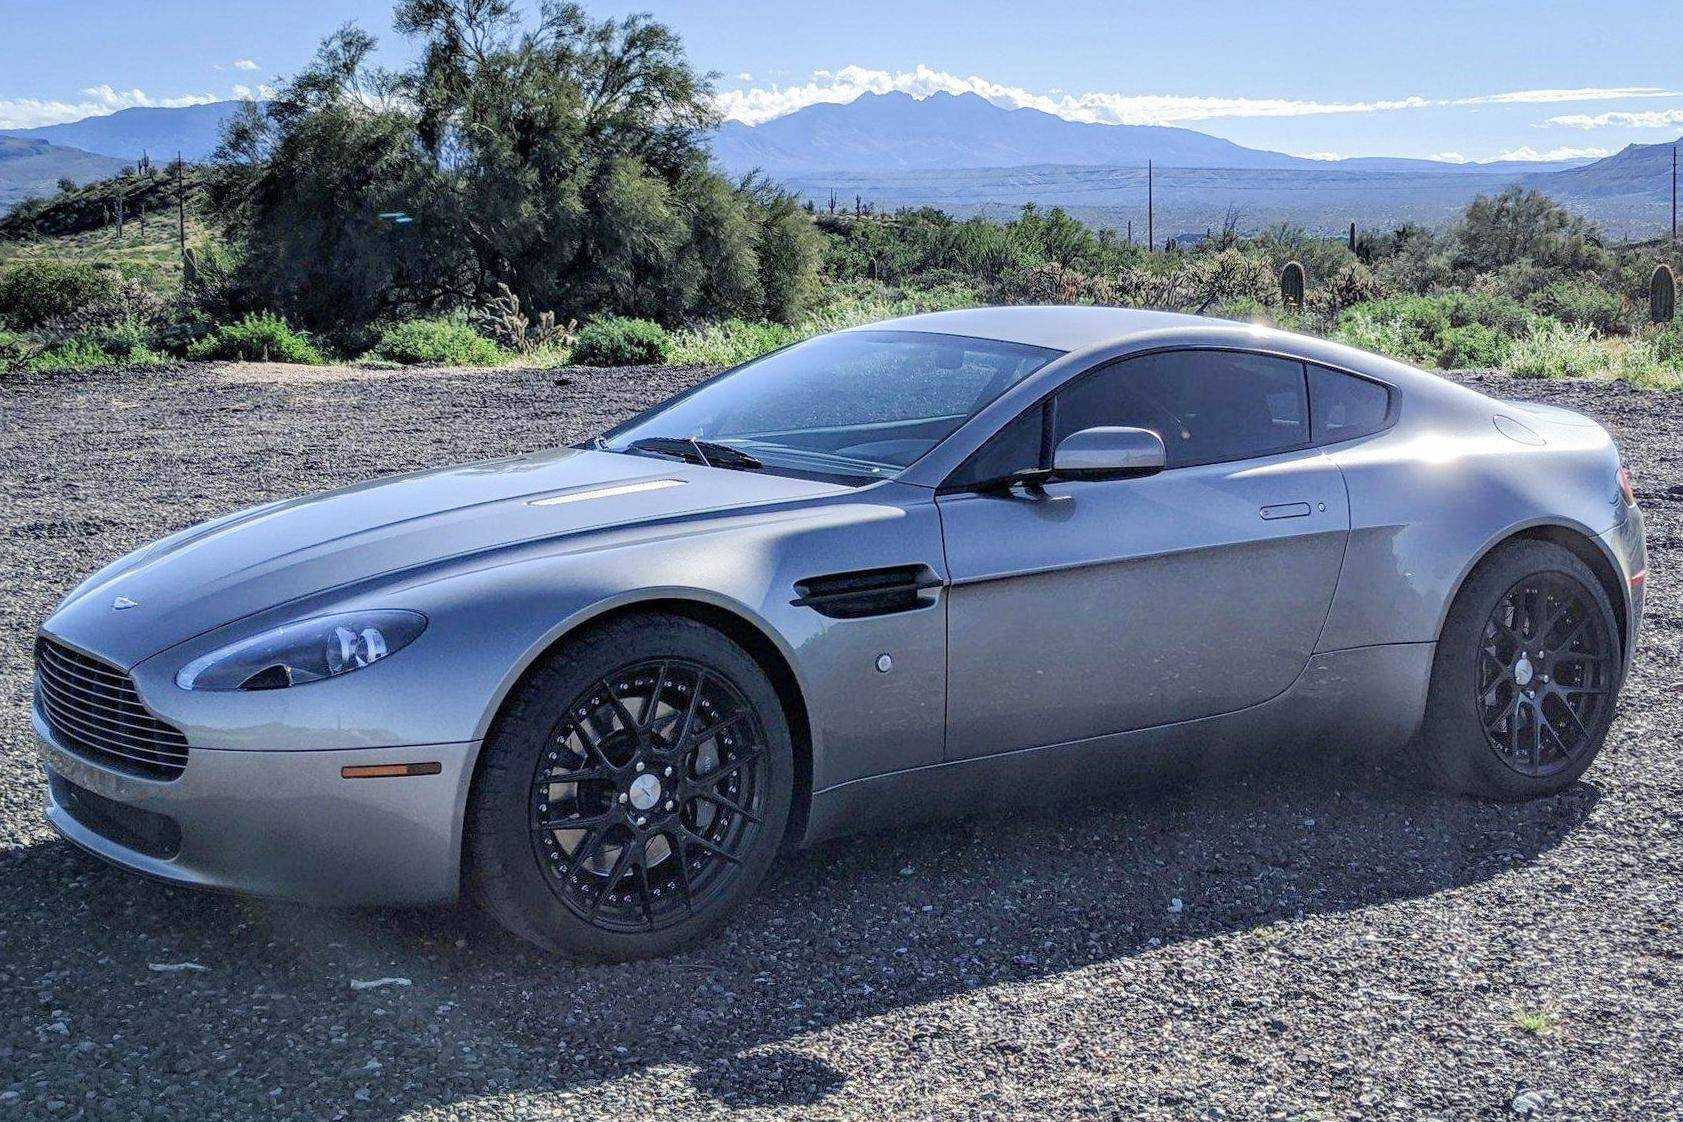 Doug Demuro On Twitter Nice Carsandbids Listing 2007 Aston Martin V8 Vantage 6 Speed Manual And No Reserve We Ve Been Very Successful With These As They Re Total Bargains For An Exotic Sports